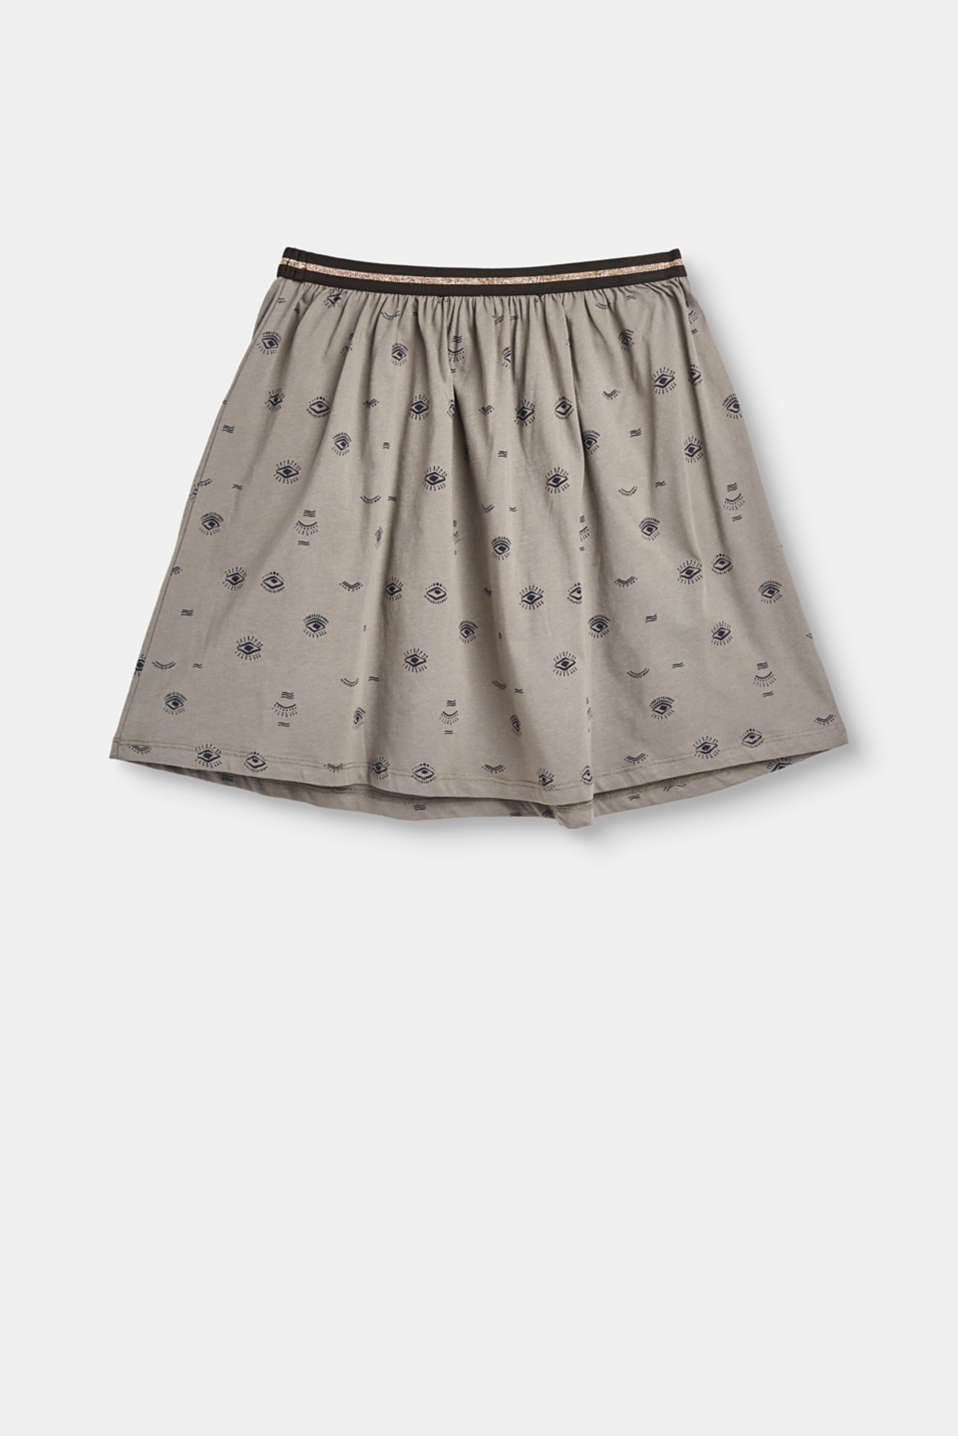 Esprit - Sweatshirt skirt with print, elasticated waist